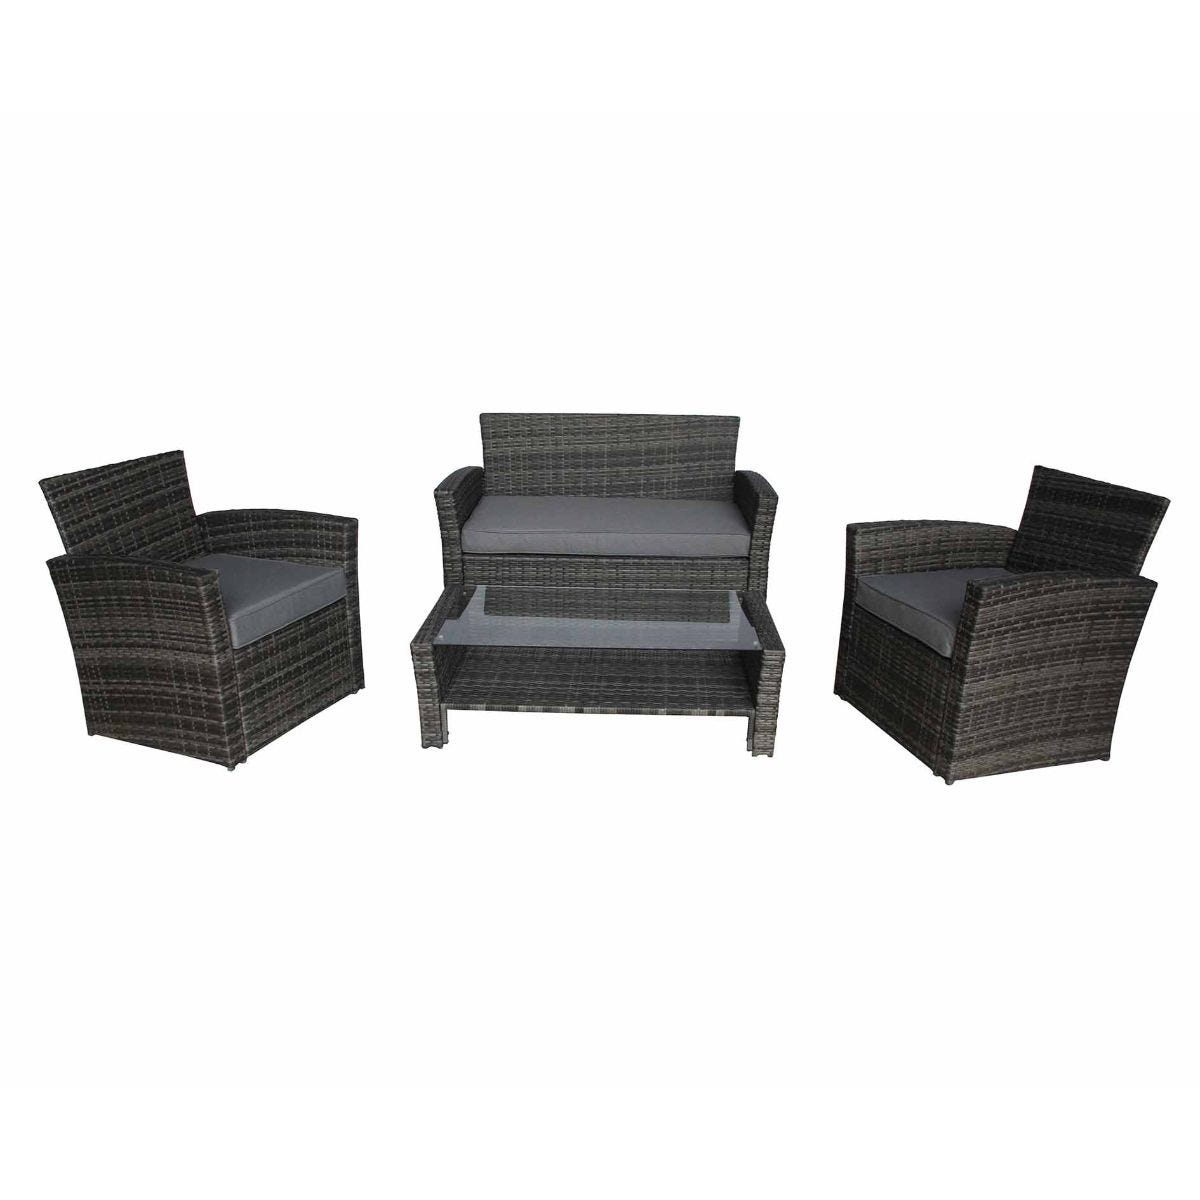 Charles Bentley Verona Deluxe Garden Rattan 4 Piece Table and Chairs Set, Grey